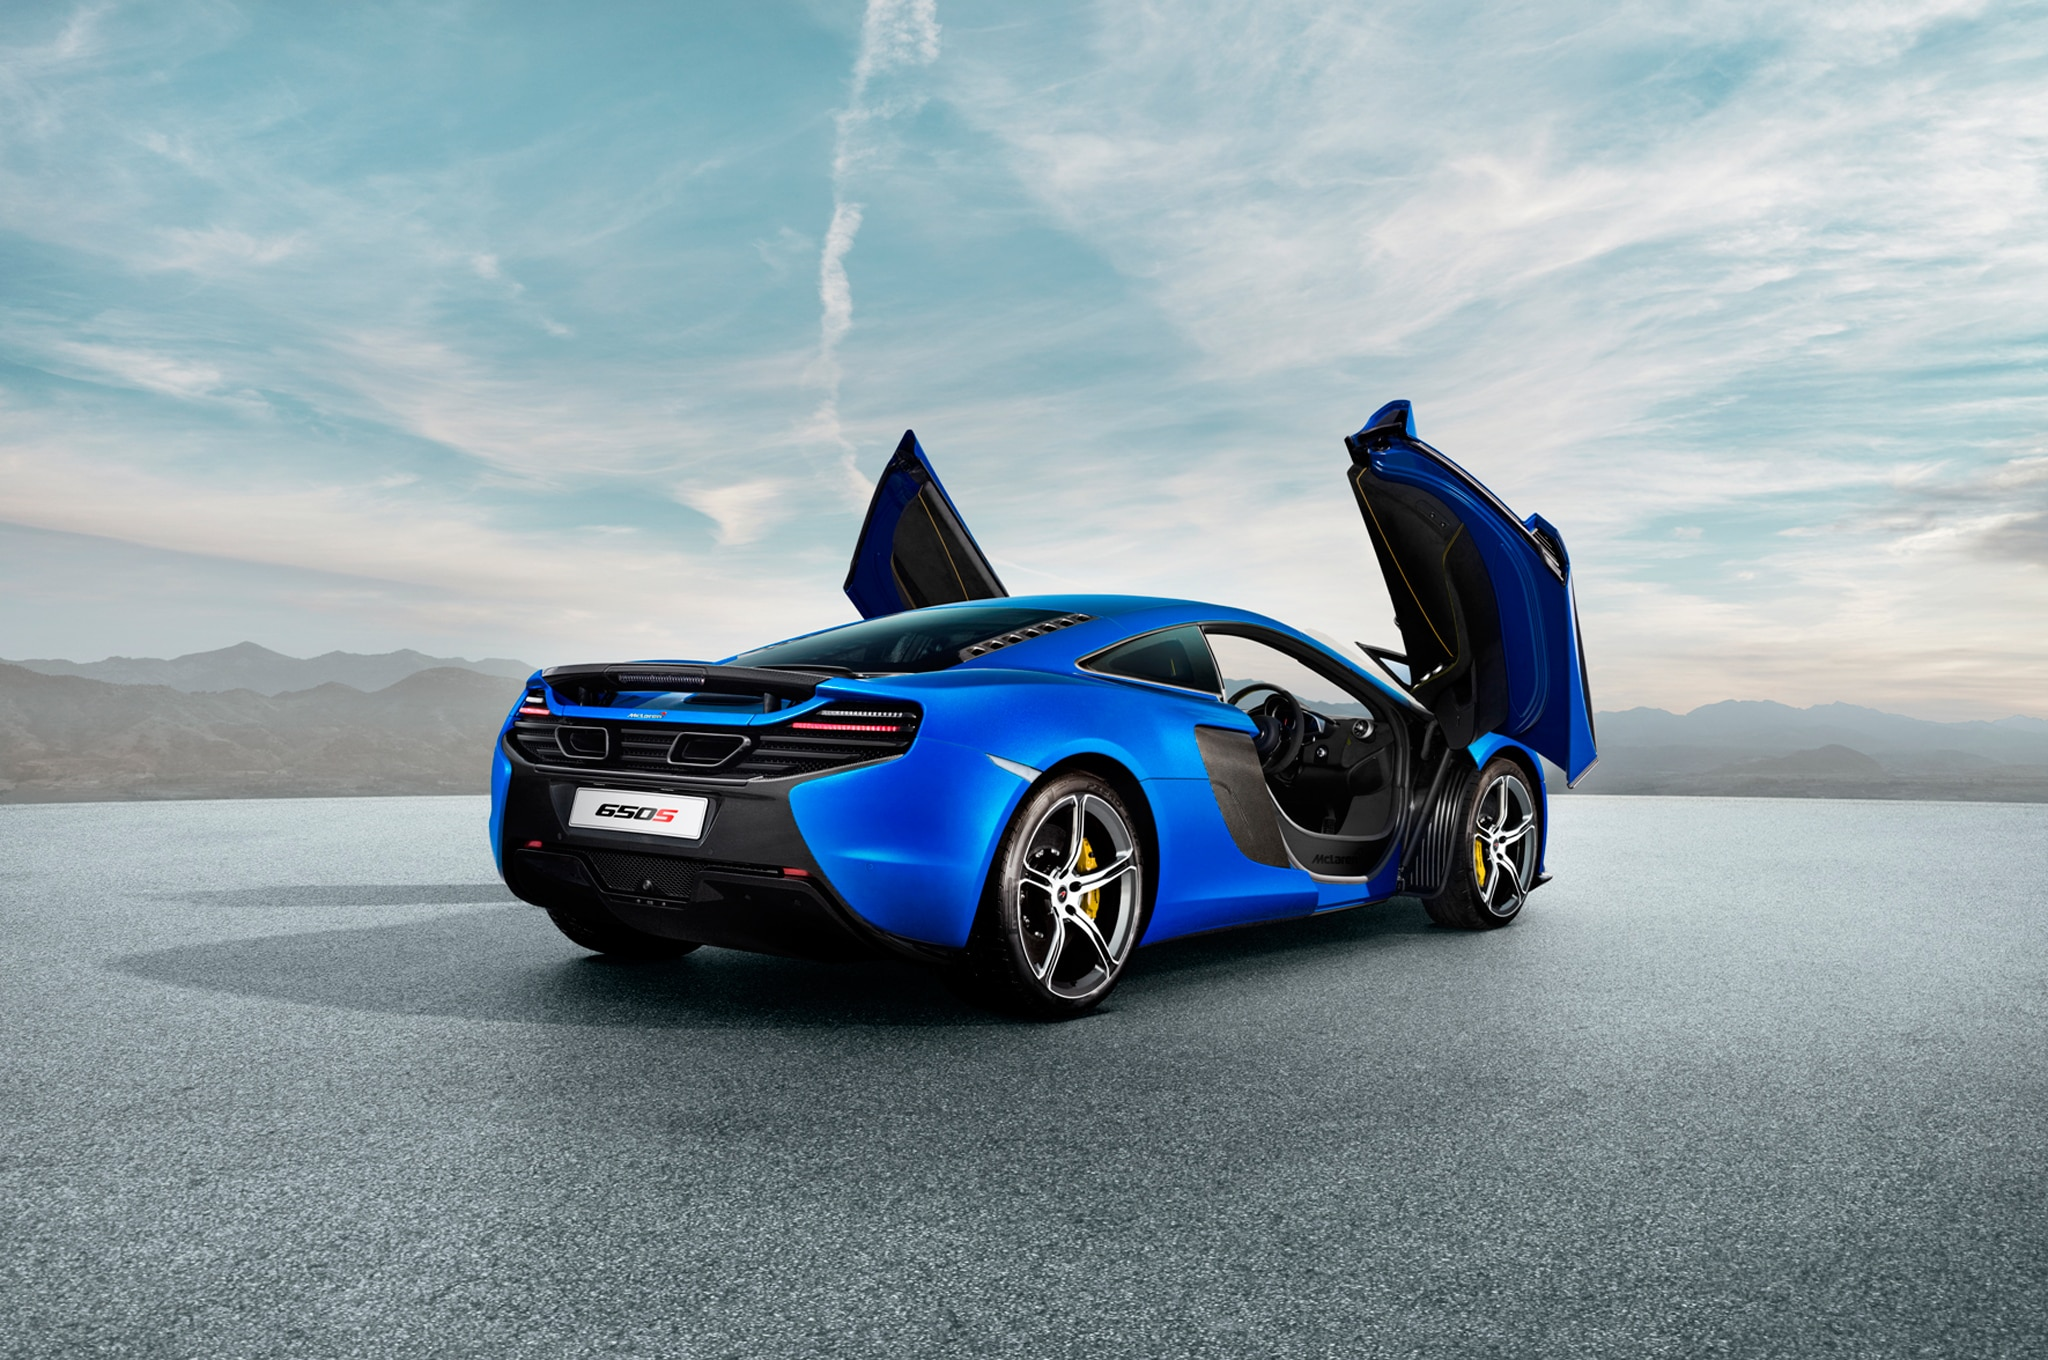 2015 Mclaren 650s Coupe Rear Three Quarter1